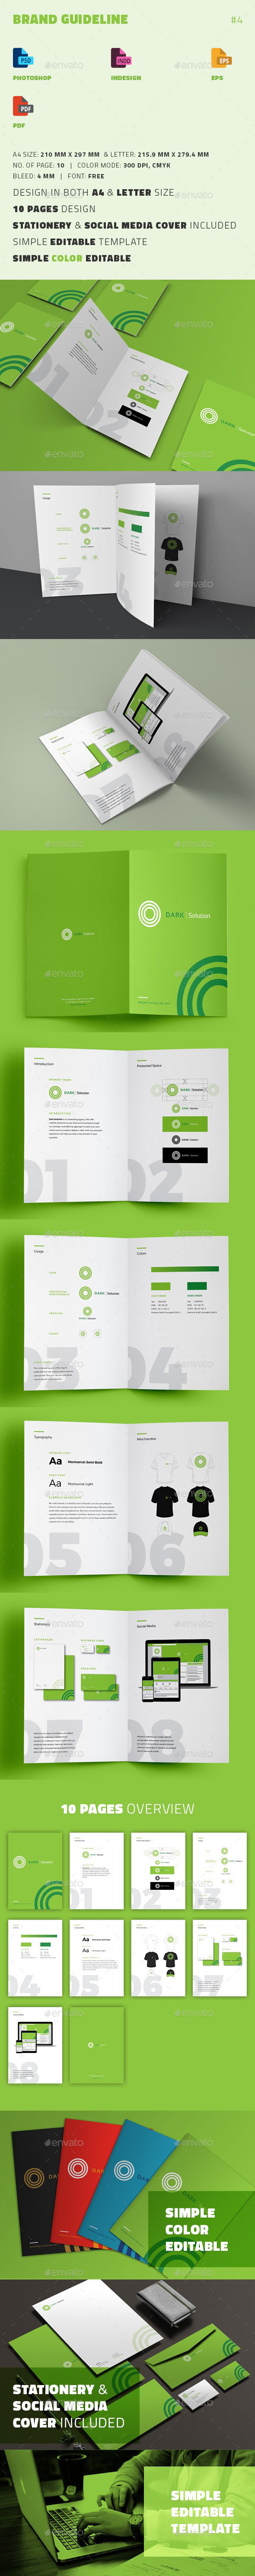 Brand Guideline - Informational Brochures